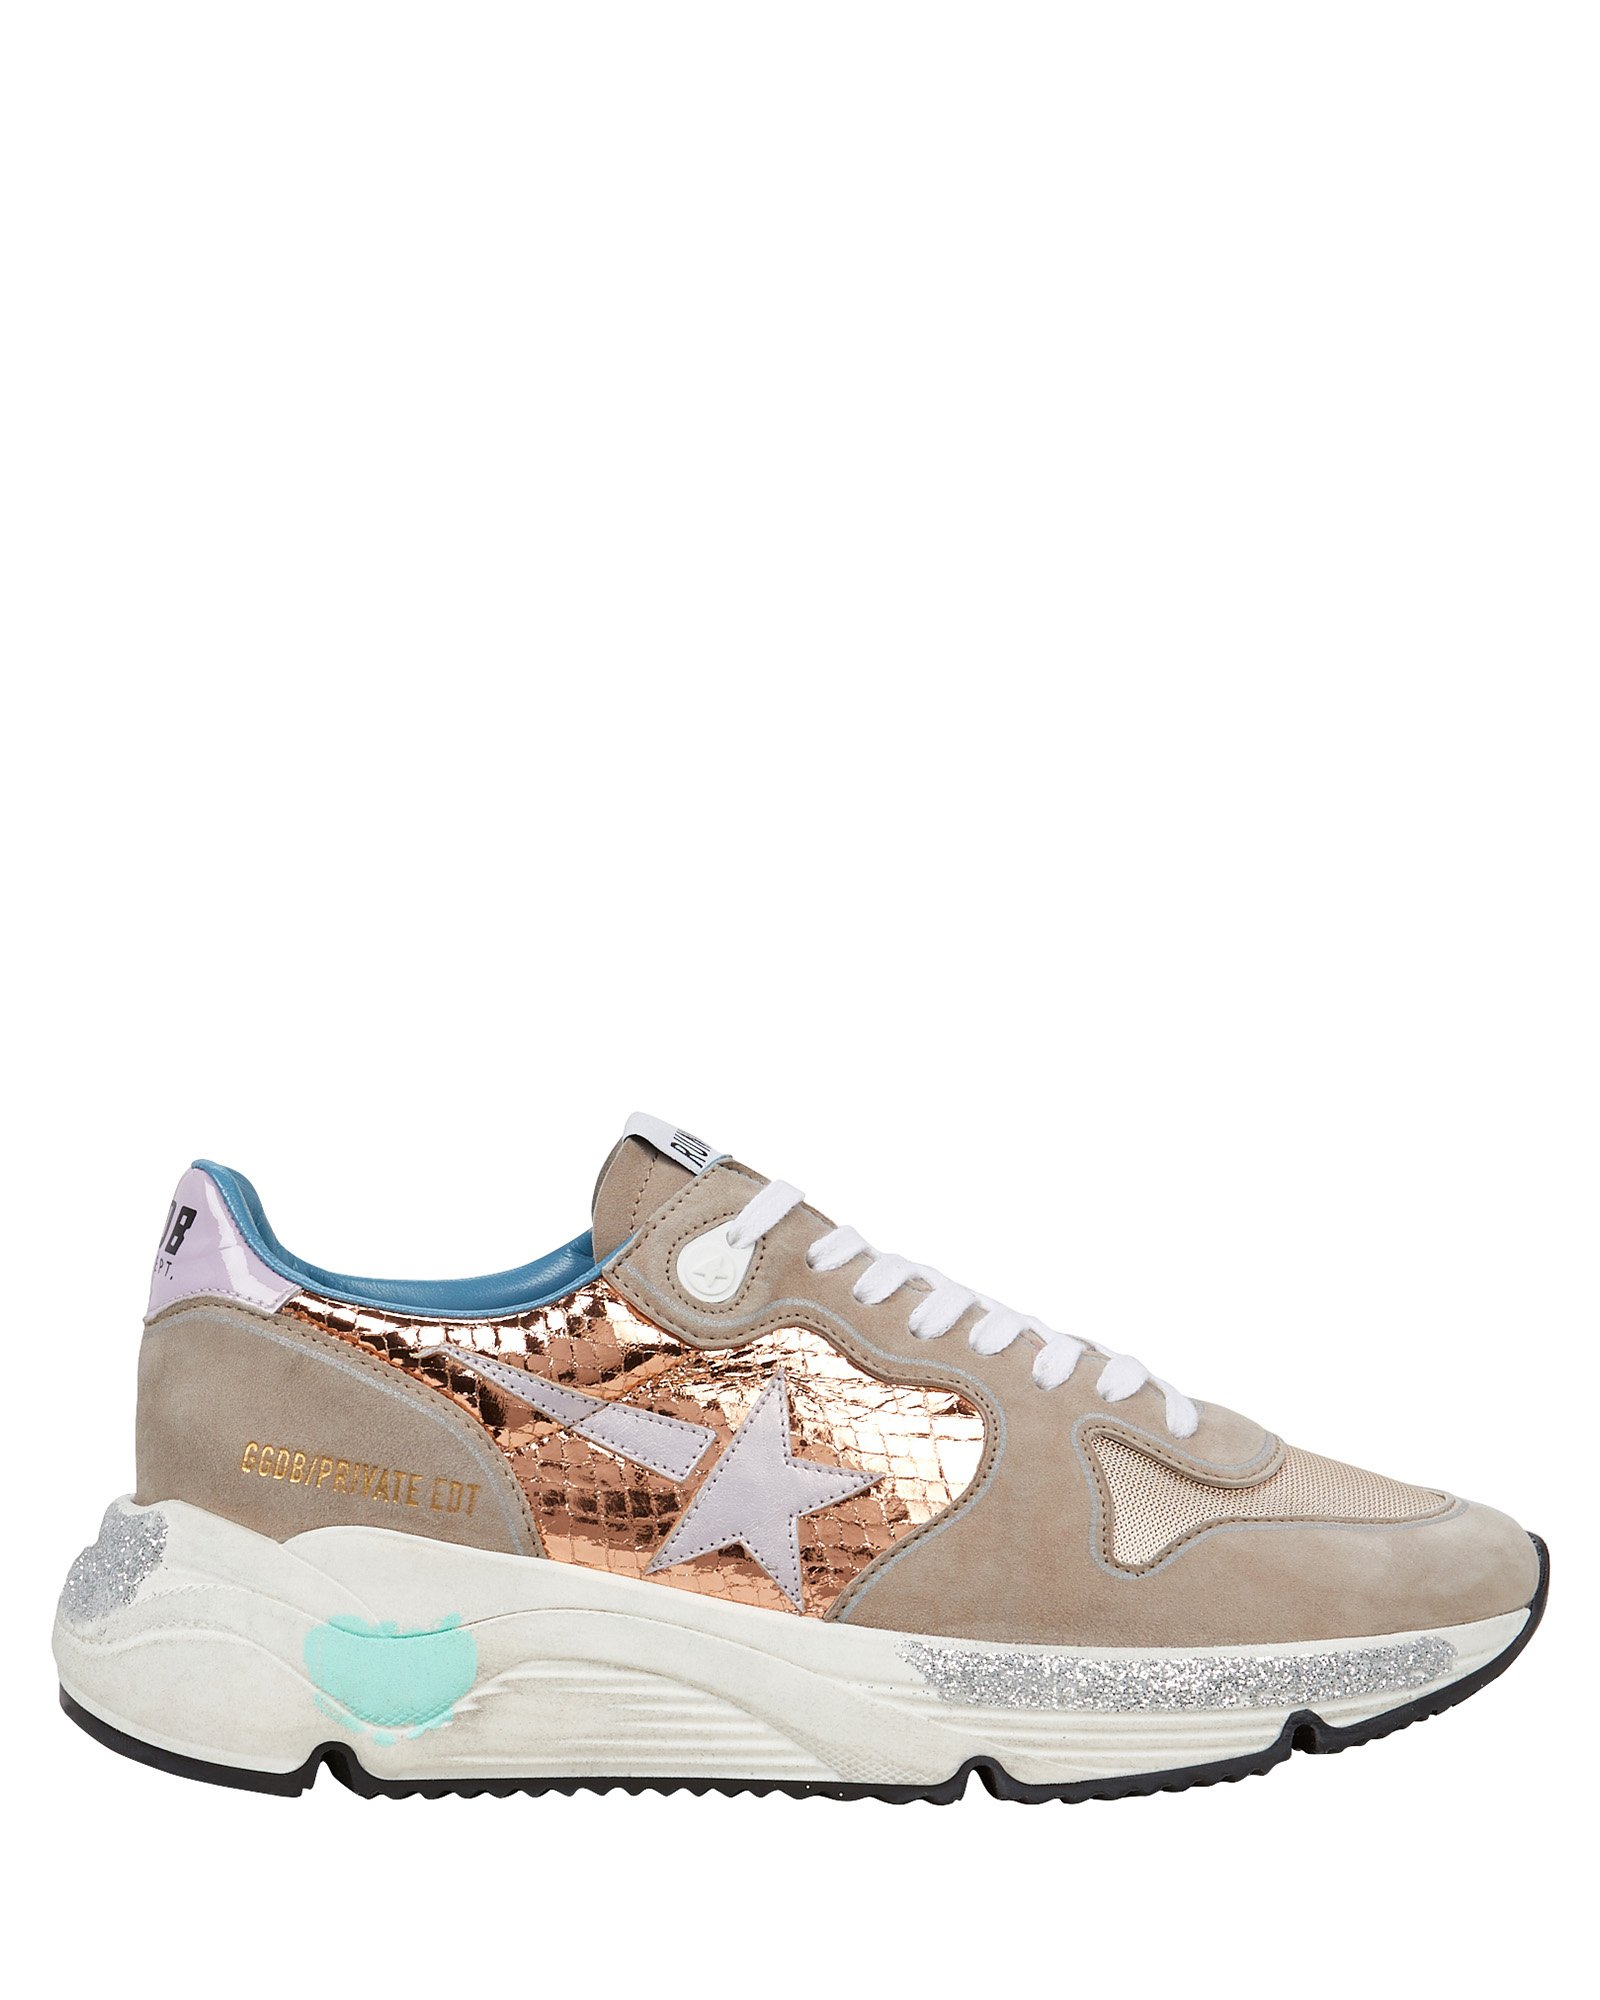 Golden Goose Running Sole Suede Sneakers In Taupe/Rose Gold